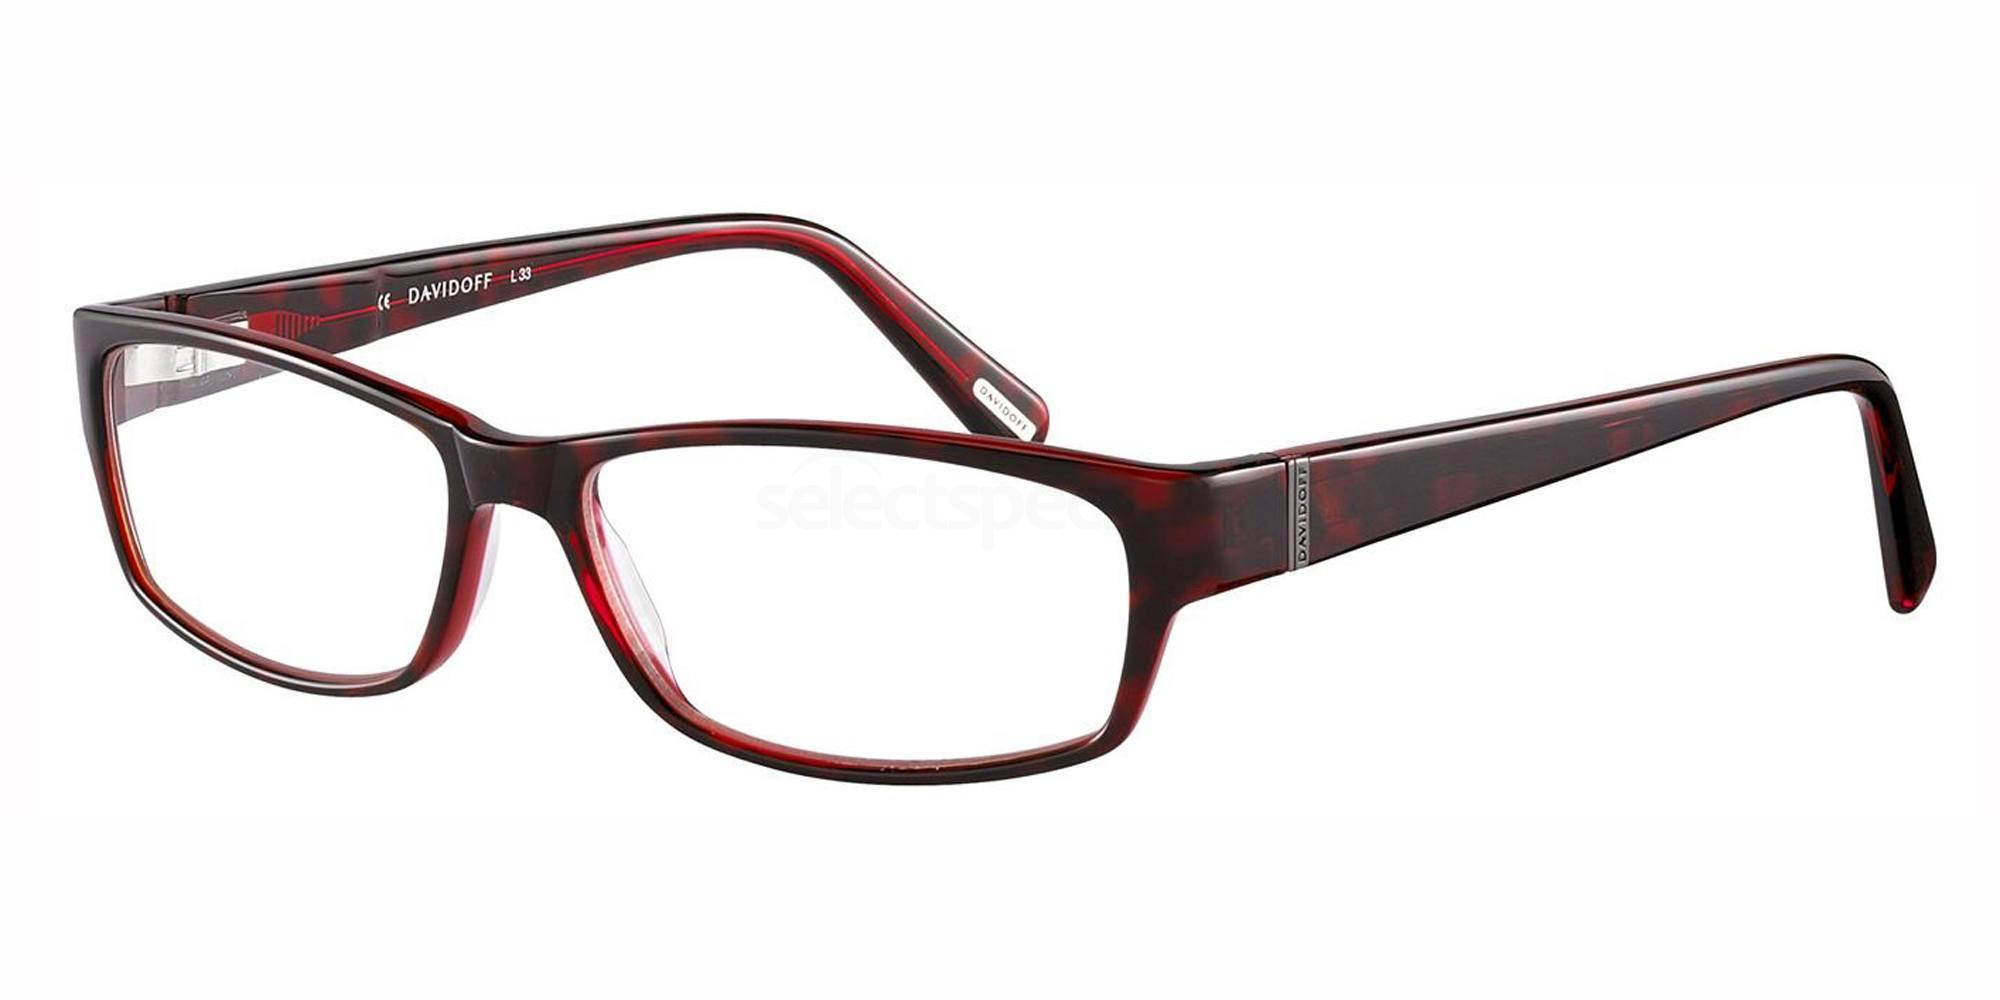 6270 91024 Glasses, DAVIDOFF Eyewear